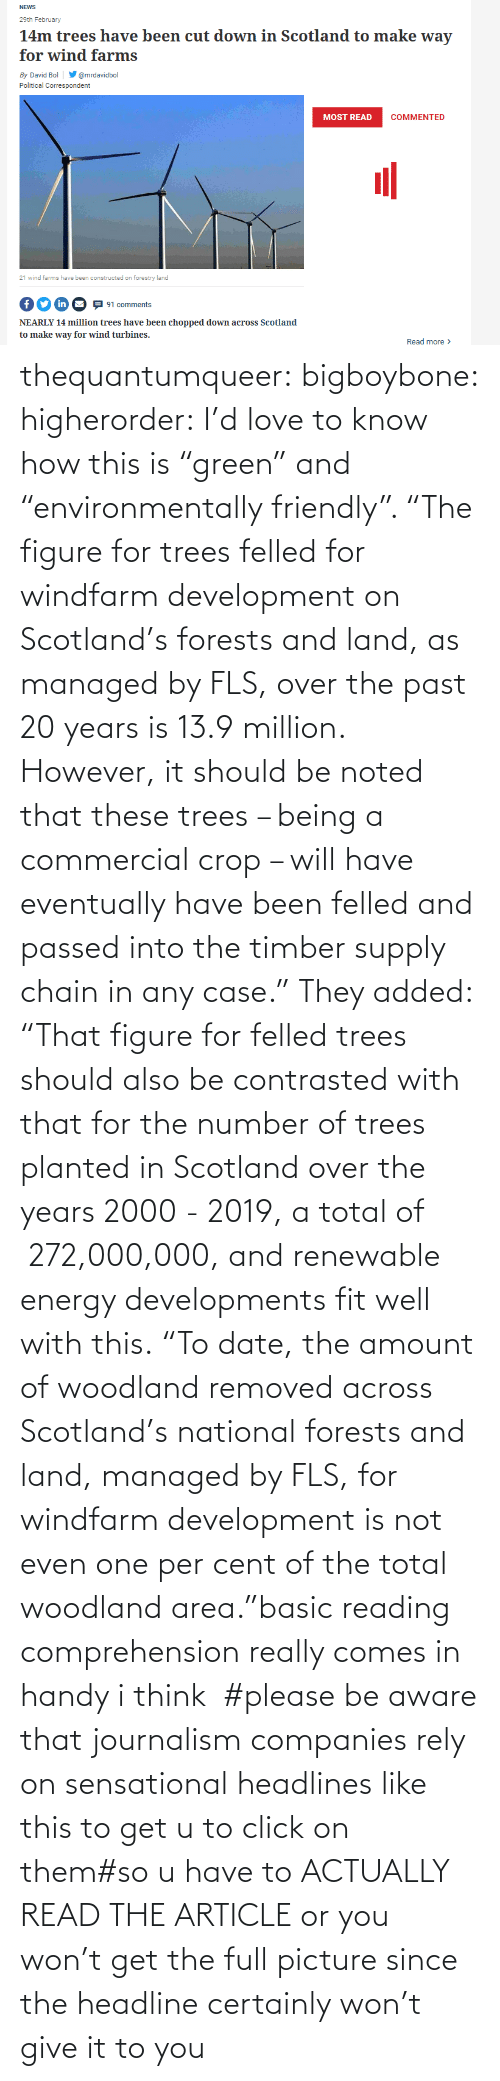 """Click, Energy, and Love: thequantumqueer: bigboybone:  higherorder: I'd love to know how this is """"green"""" and """"environmentally friendly"""".  """"The figure for trees felled for windfarm development on Scotland's forests and land, as managed by FLS, over the past 20 years is 13.9 million. However, it should be noted that these trees – being a commercial crop – will have eventually have been felled and passed into the timber supply chain in any case."""" They added: """"That figure for felled trees should also be contrasted with that for the number of trees planted in Scotland over the years 2000 - 2019, a total of 272,000,000, and renewable energy developments fit well with this. """"To date, the amount of woodland removed across Scotland's national forests and land, managed by FLS, for windfarm development is not even one per cent of the total woodland area.""""basic reading comprehension really comes in handy i think  #please be aware that journalism companies rely on sensational headlines like this to get u to click on them#so u have to ACTUALLY READ THE ARTICLE or you won't get the full picture since the headline certainly won't give it to you"""